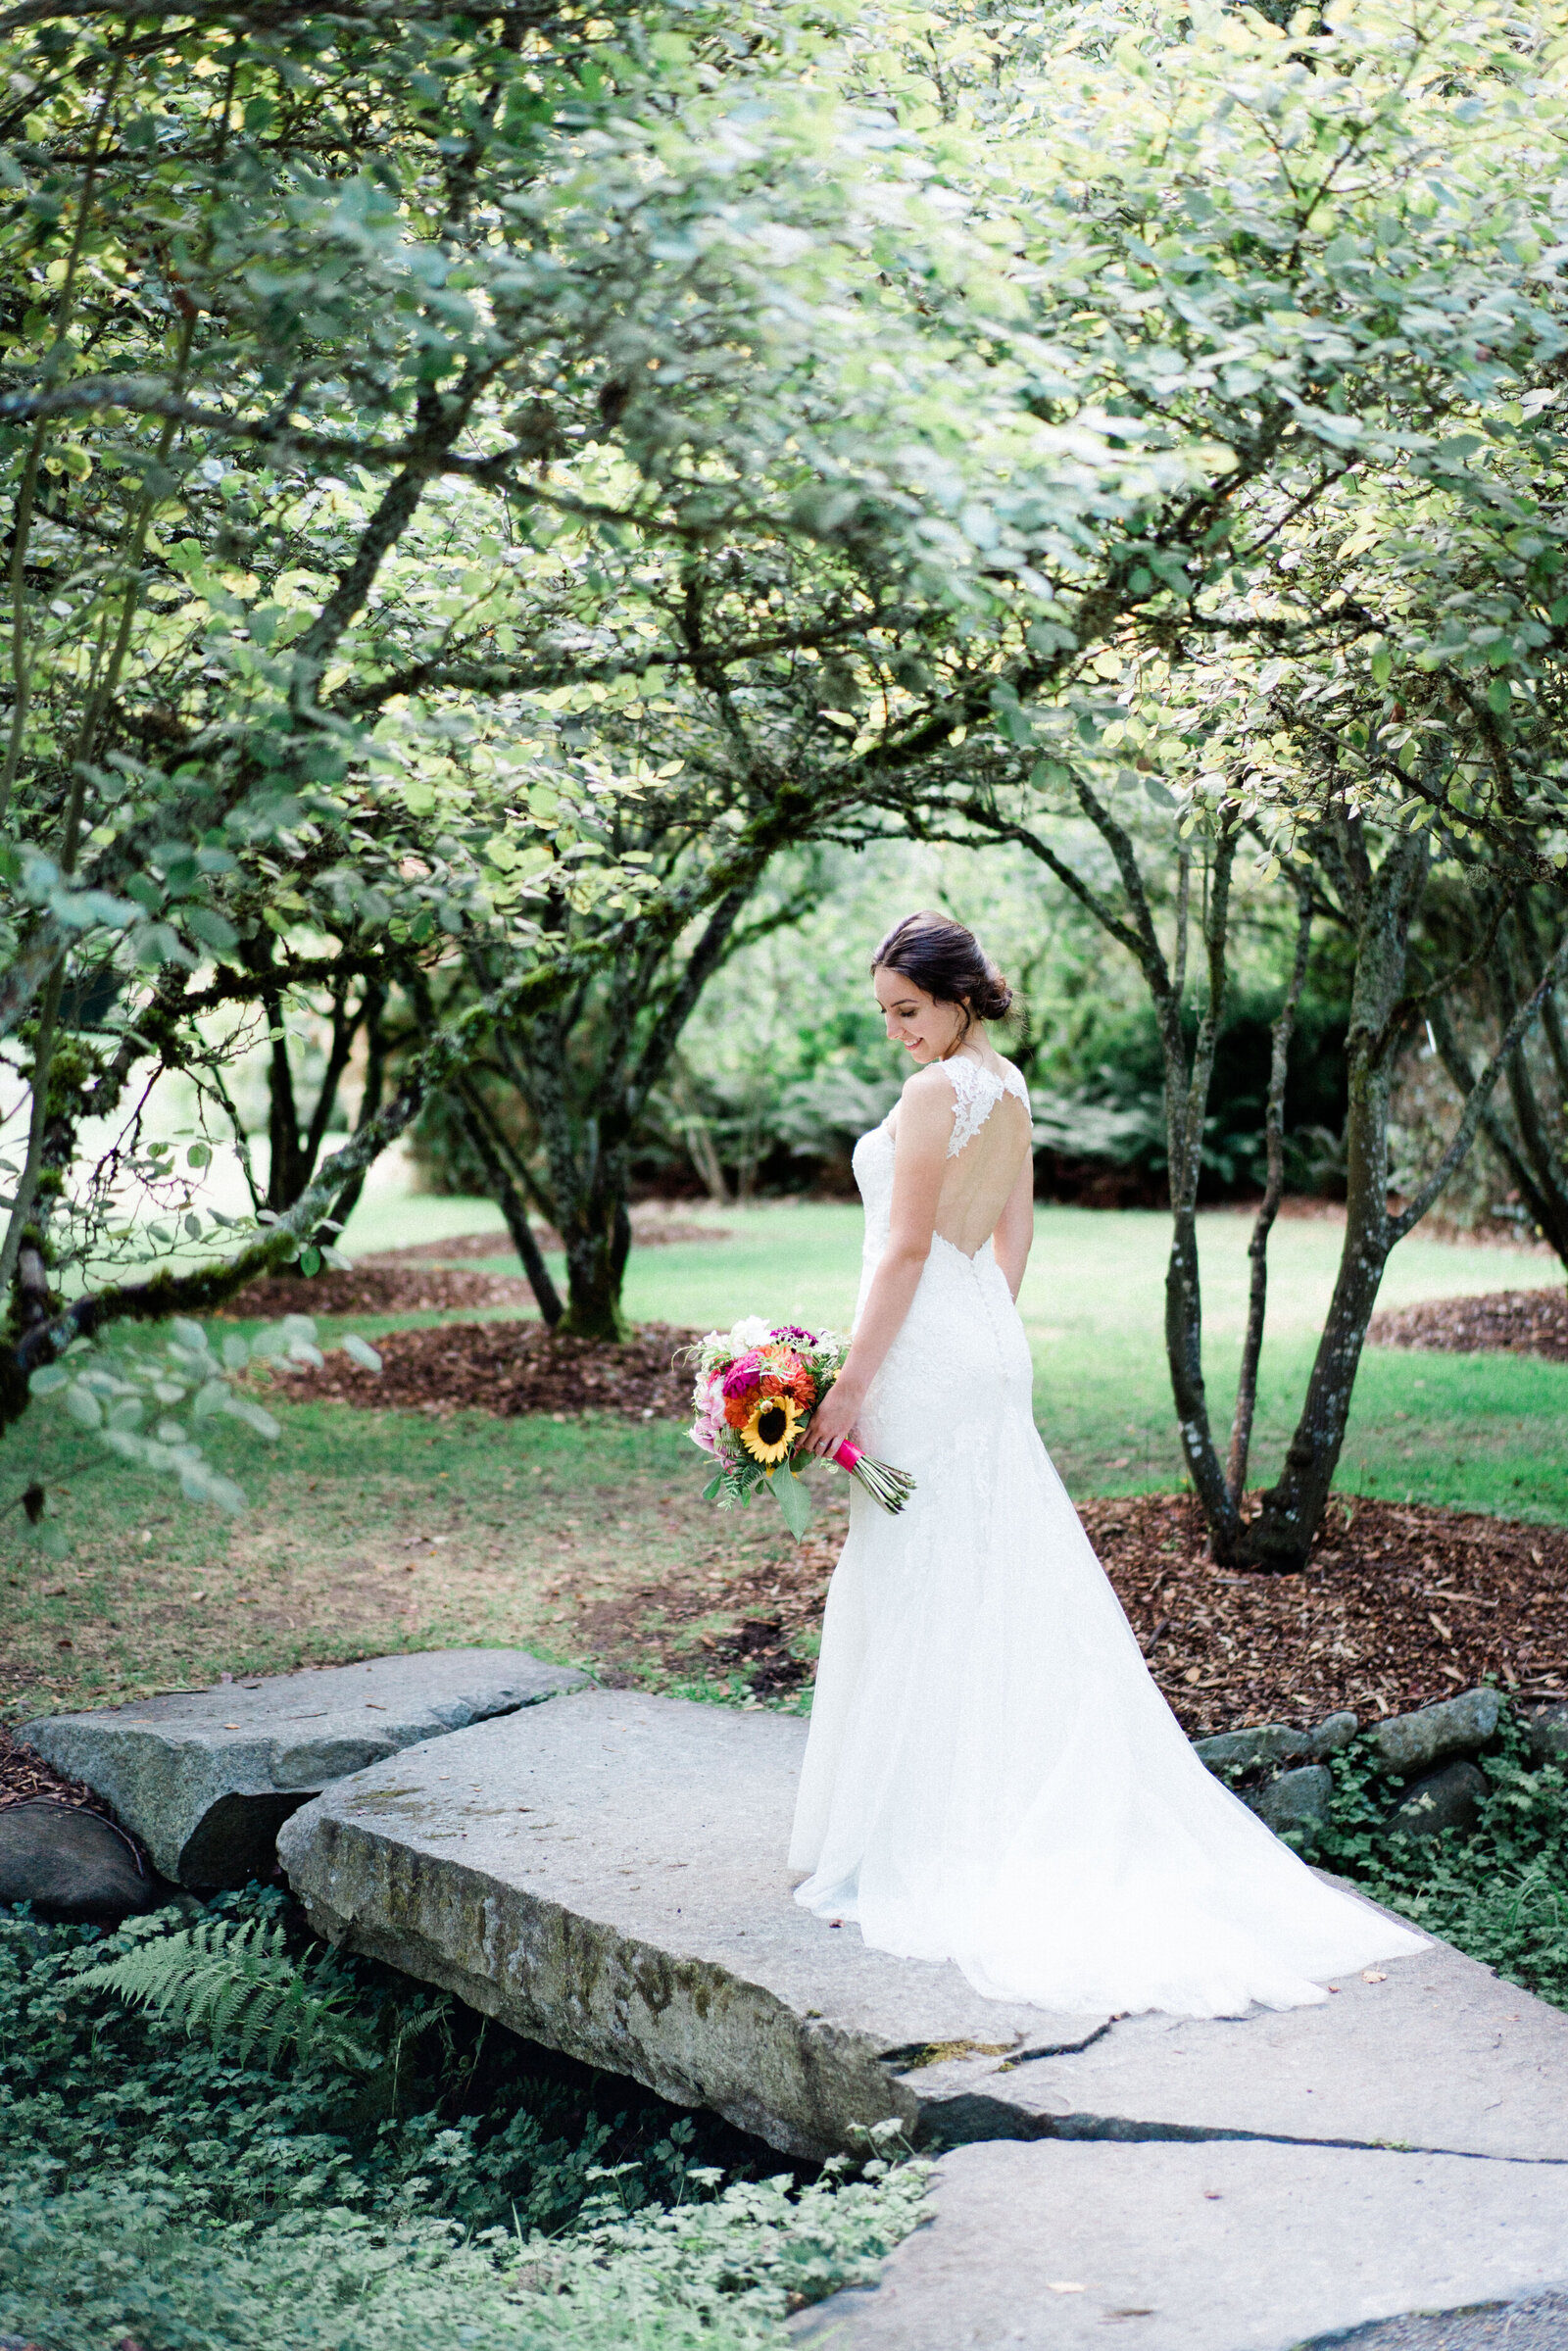 Seattle-Wedding-Photographer-And-Videographer-University-of-Washington-Arboretum-3